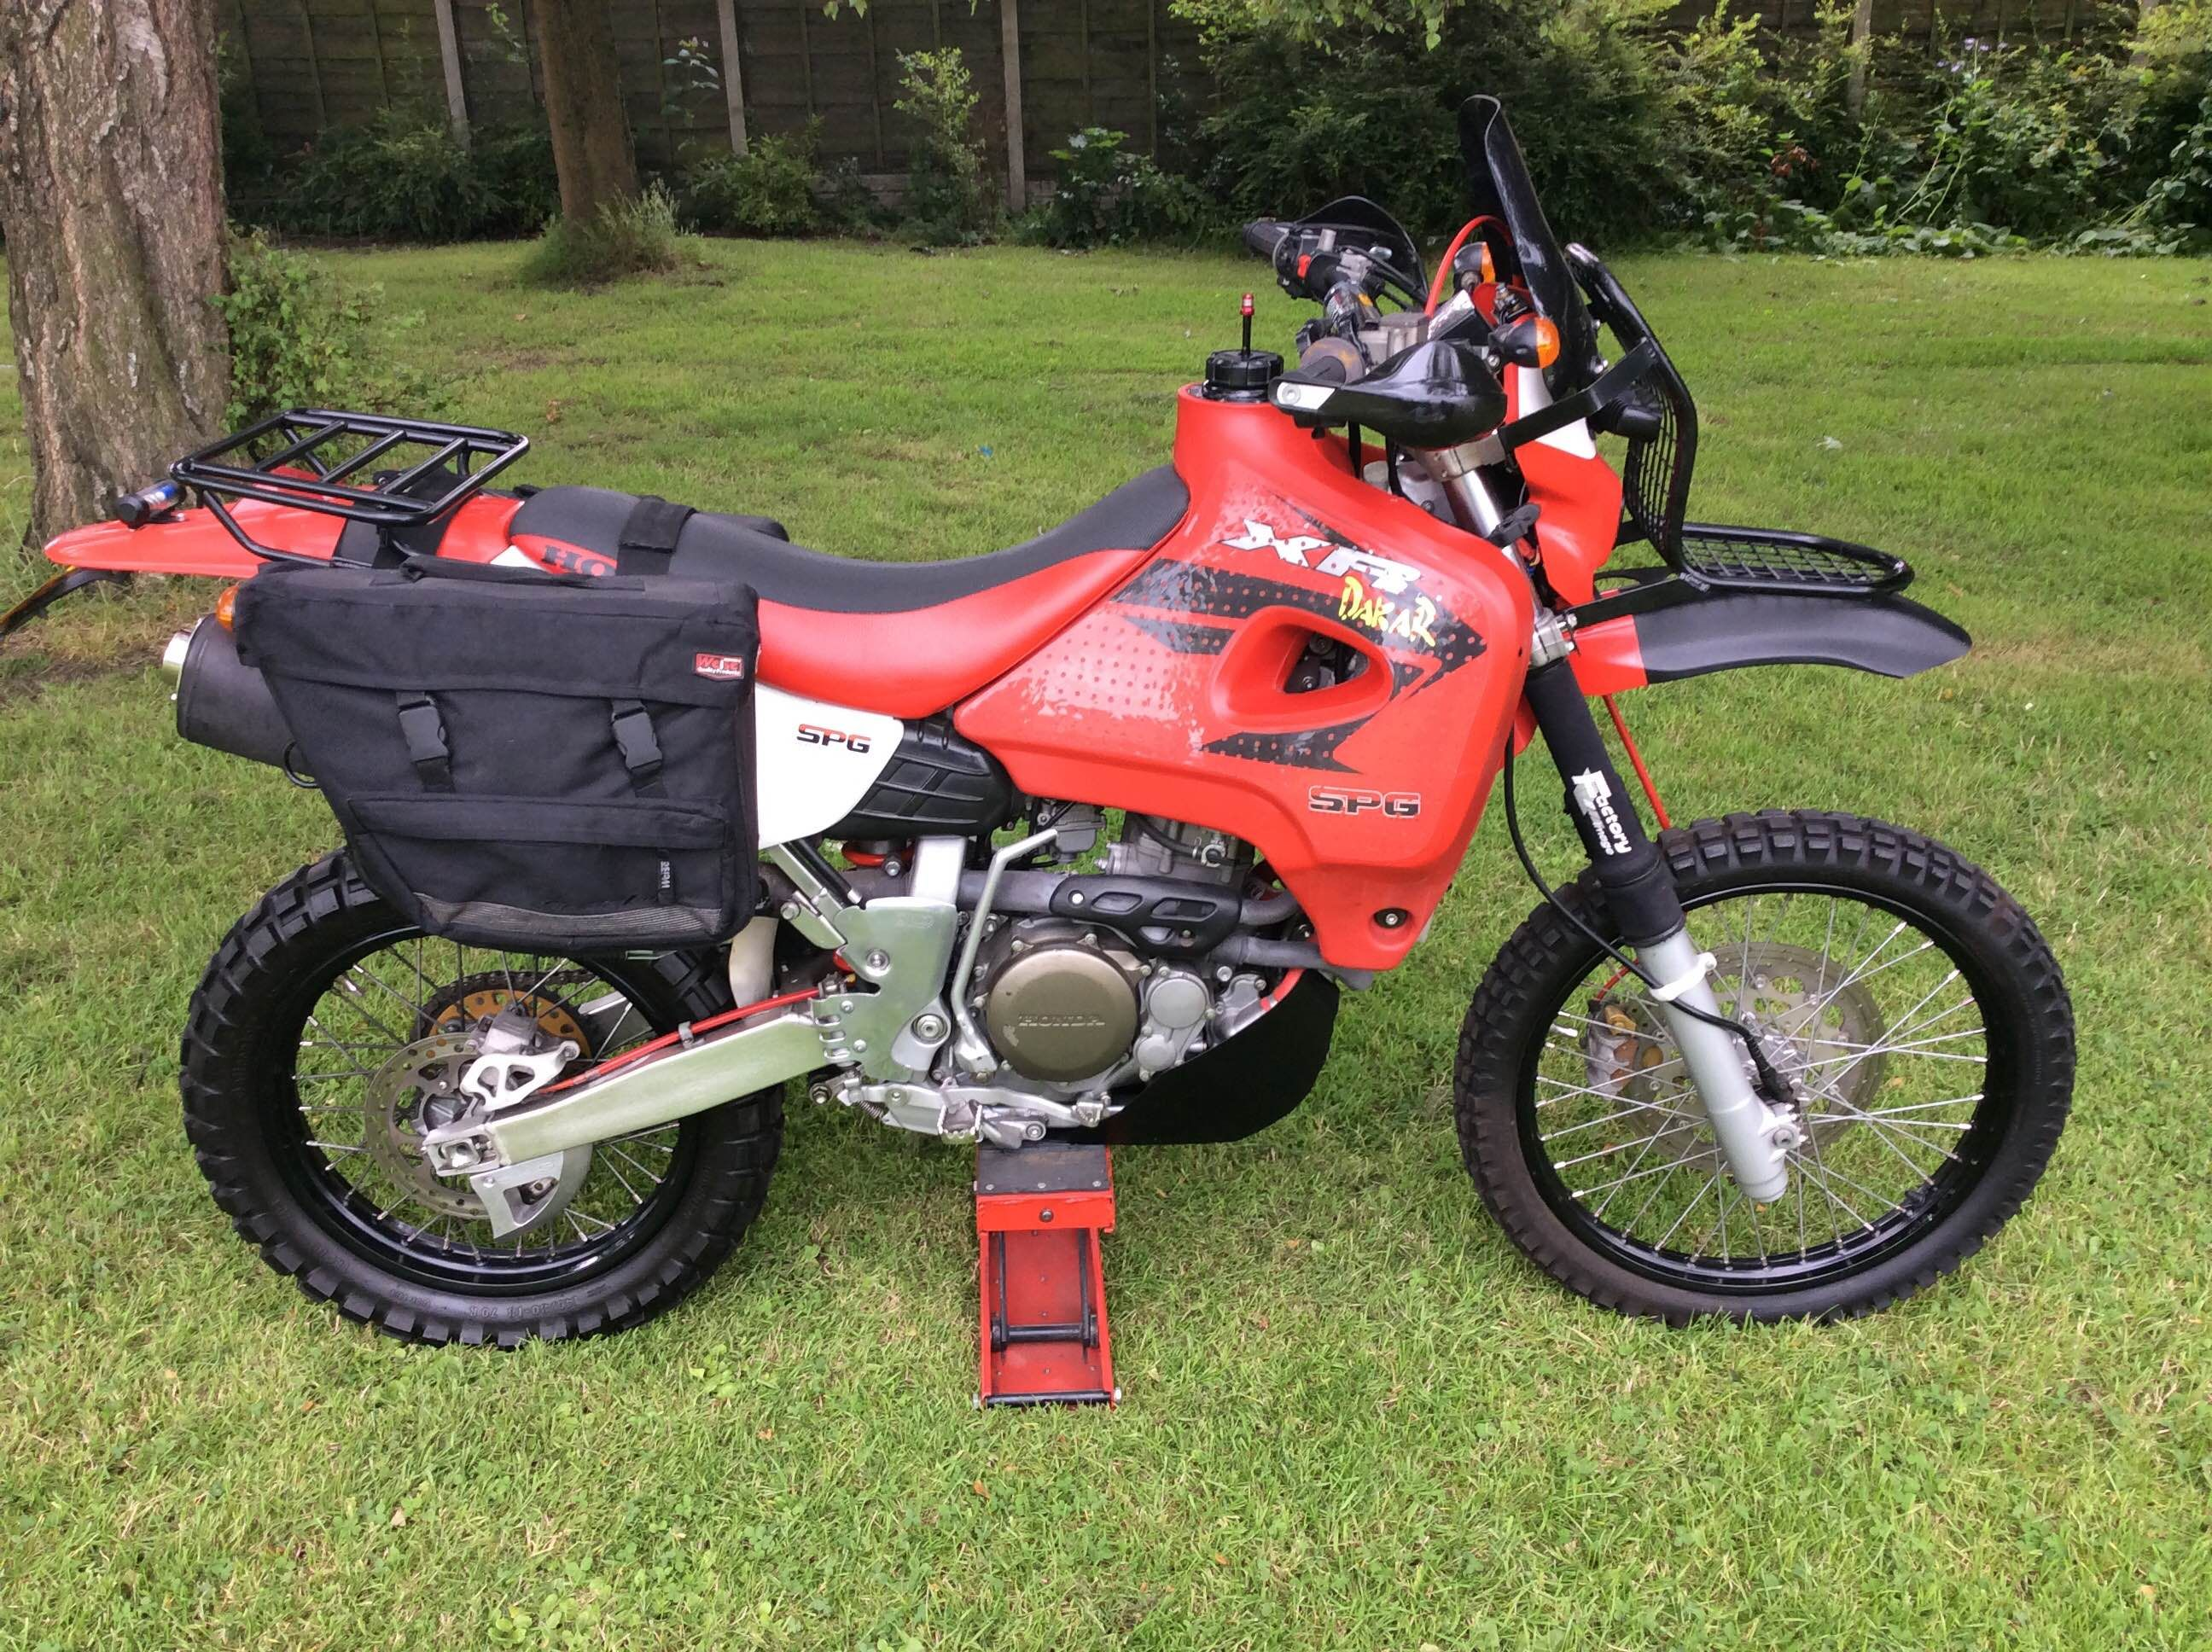 www.xr650r.co.uk UK's Number 1 Site For XR650R Spares